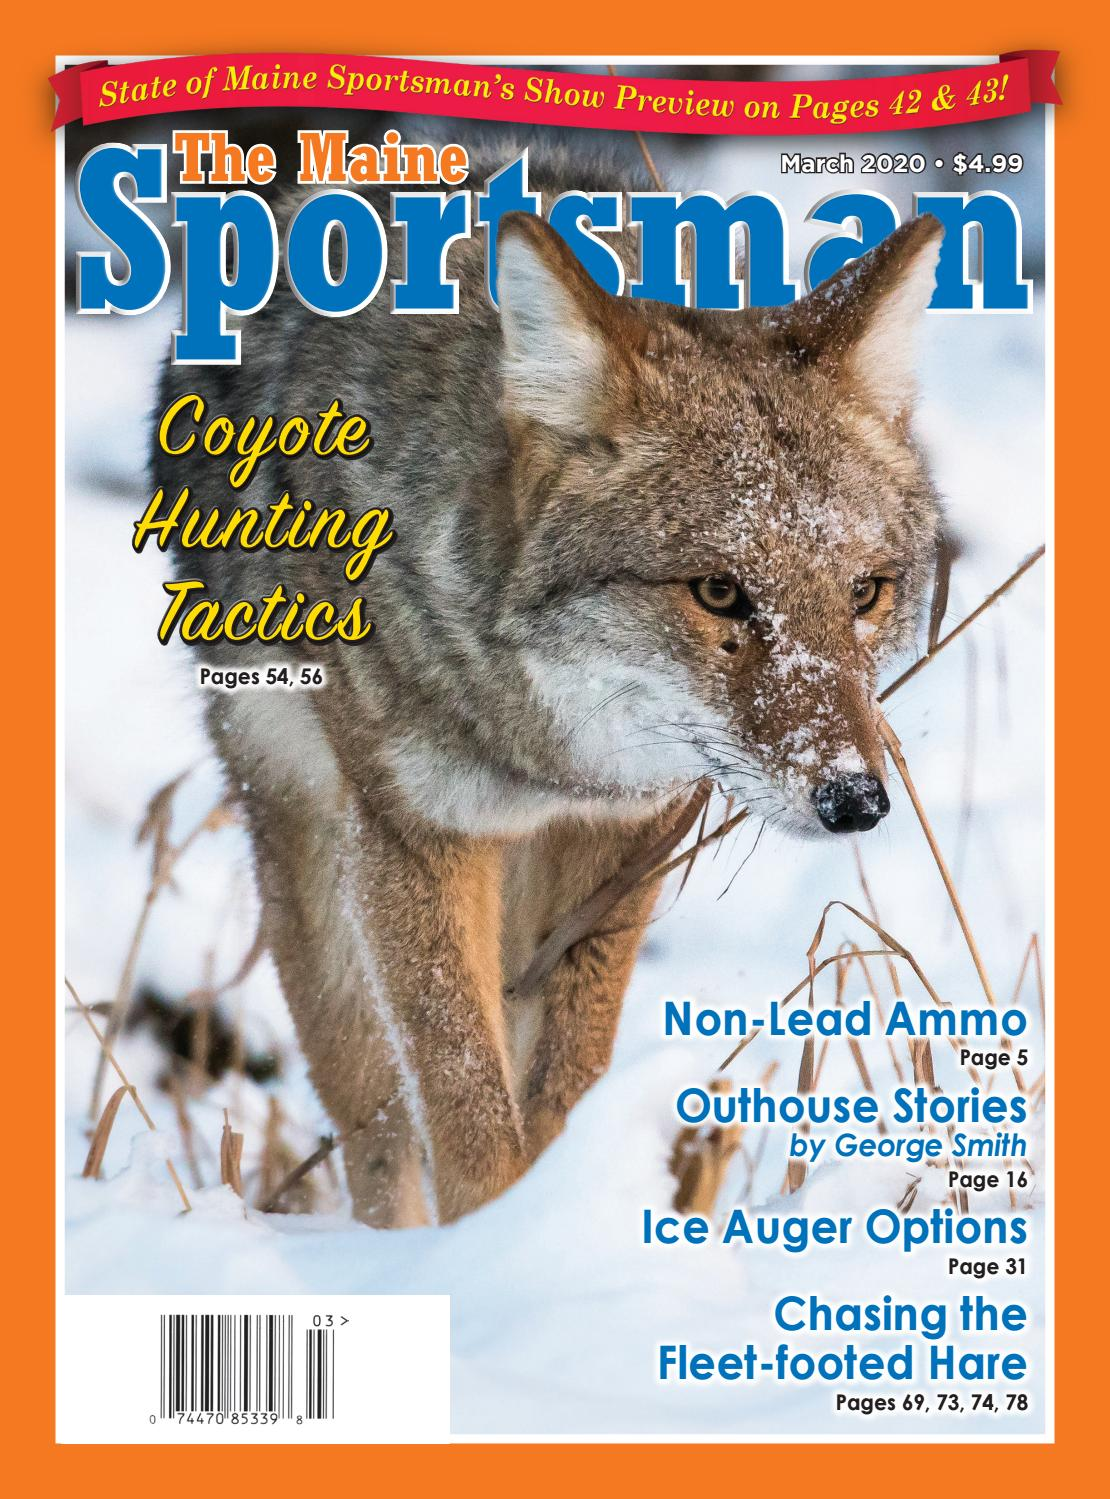 The Maine Sportsman March 2020 Digital Edition by The Maine Sportsman -  Digital Edition - issuu